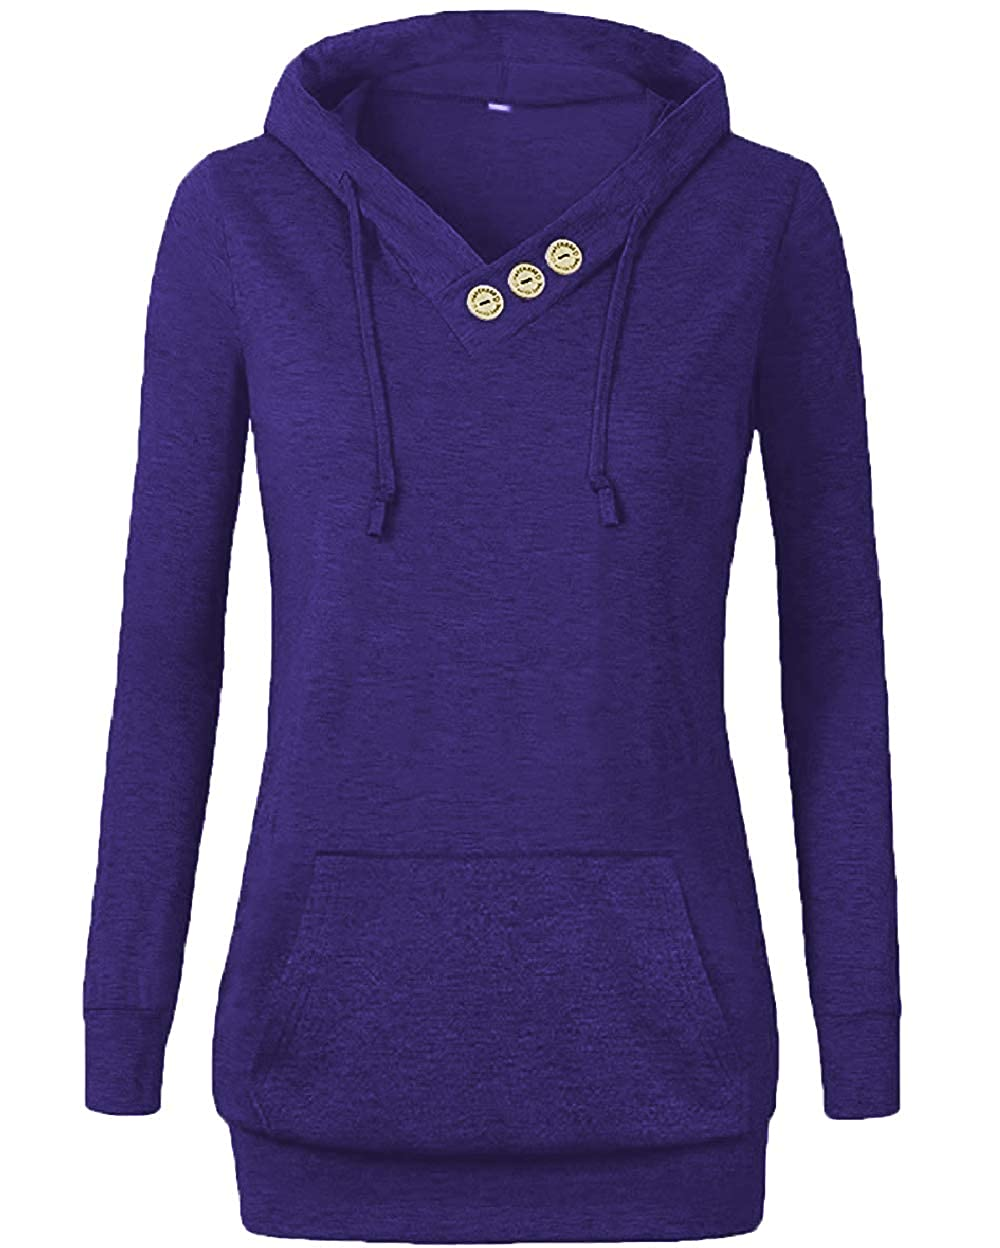 Othyroce Womens Long Sleeve Button V-Neck Hoodies Pullover Sweatshirts with Pockets